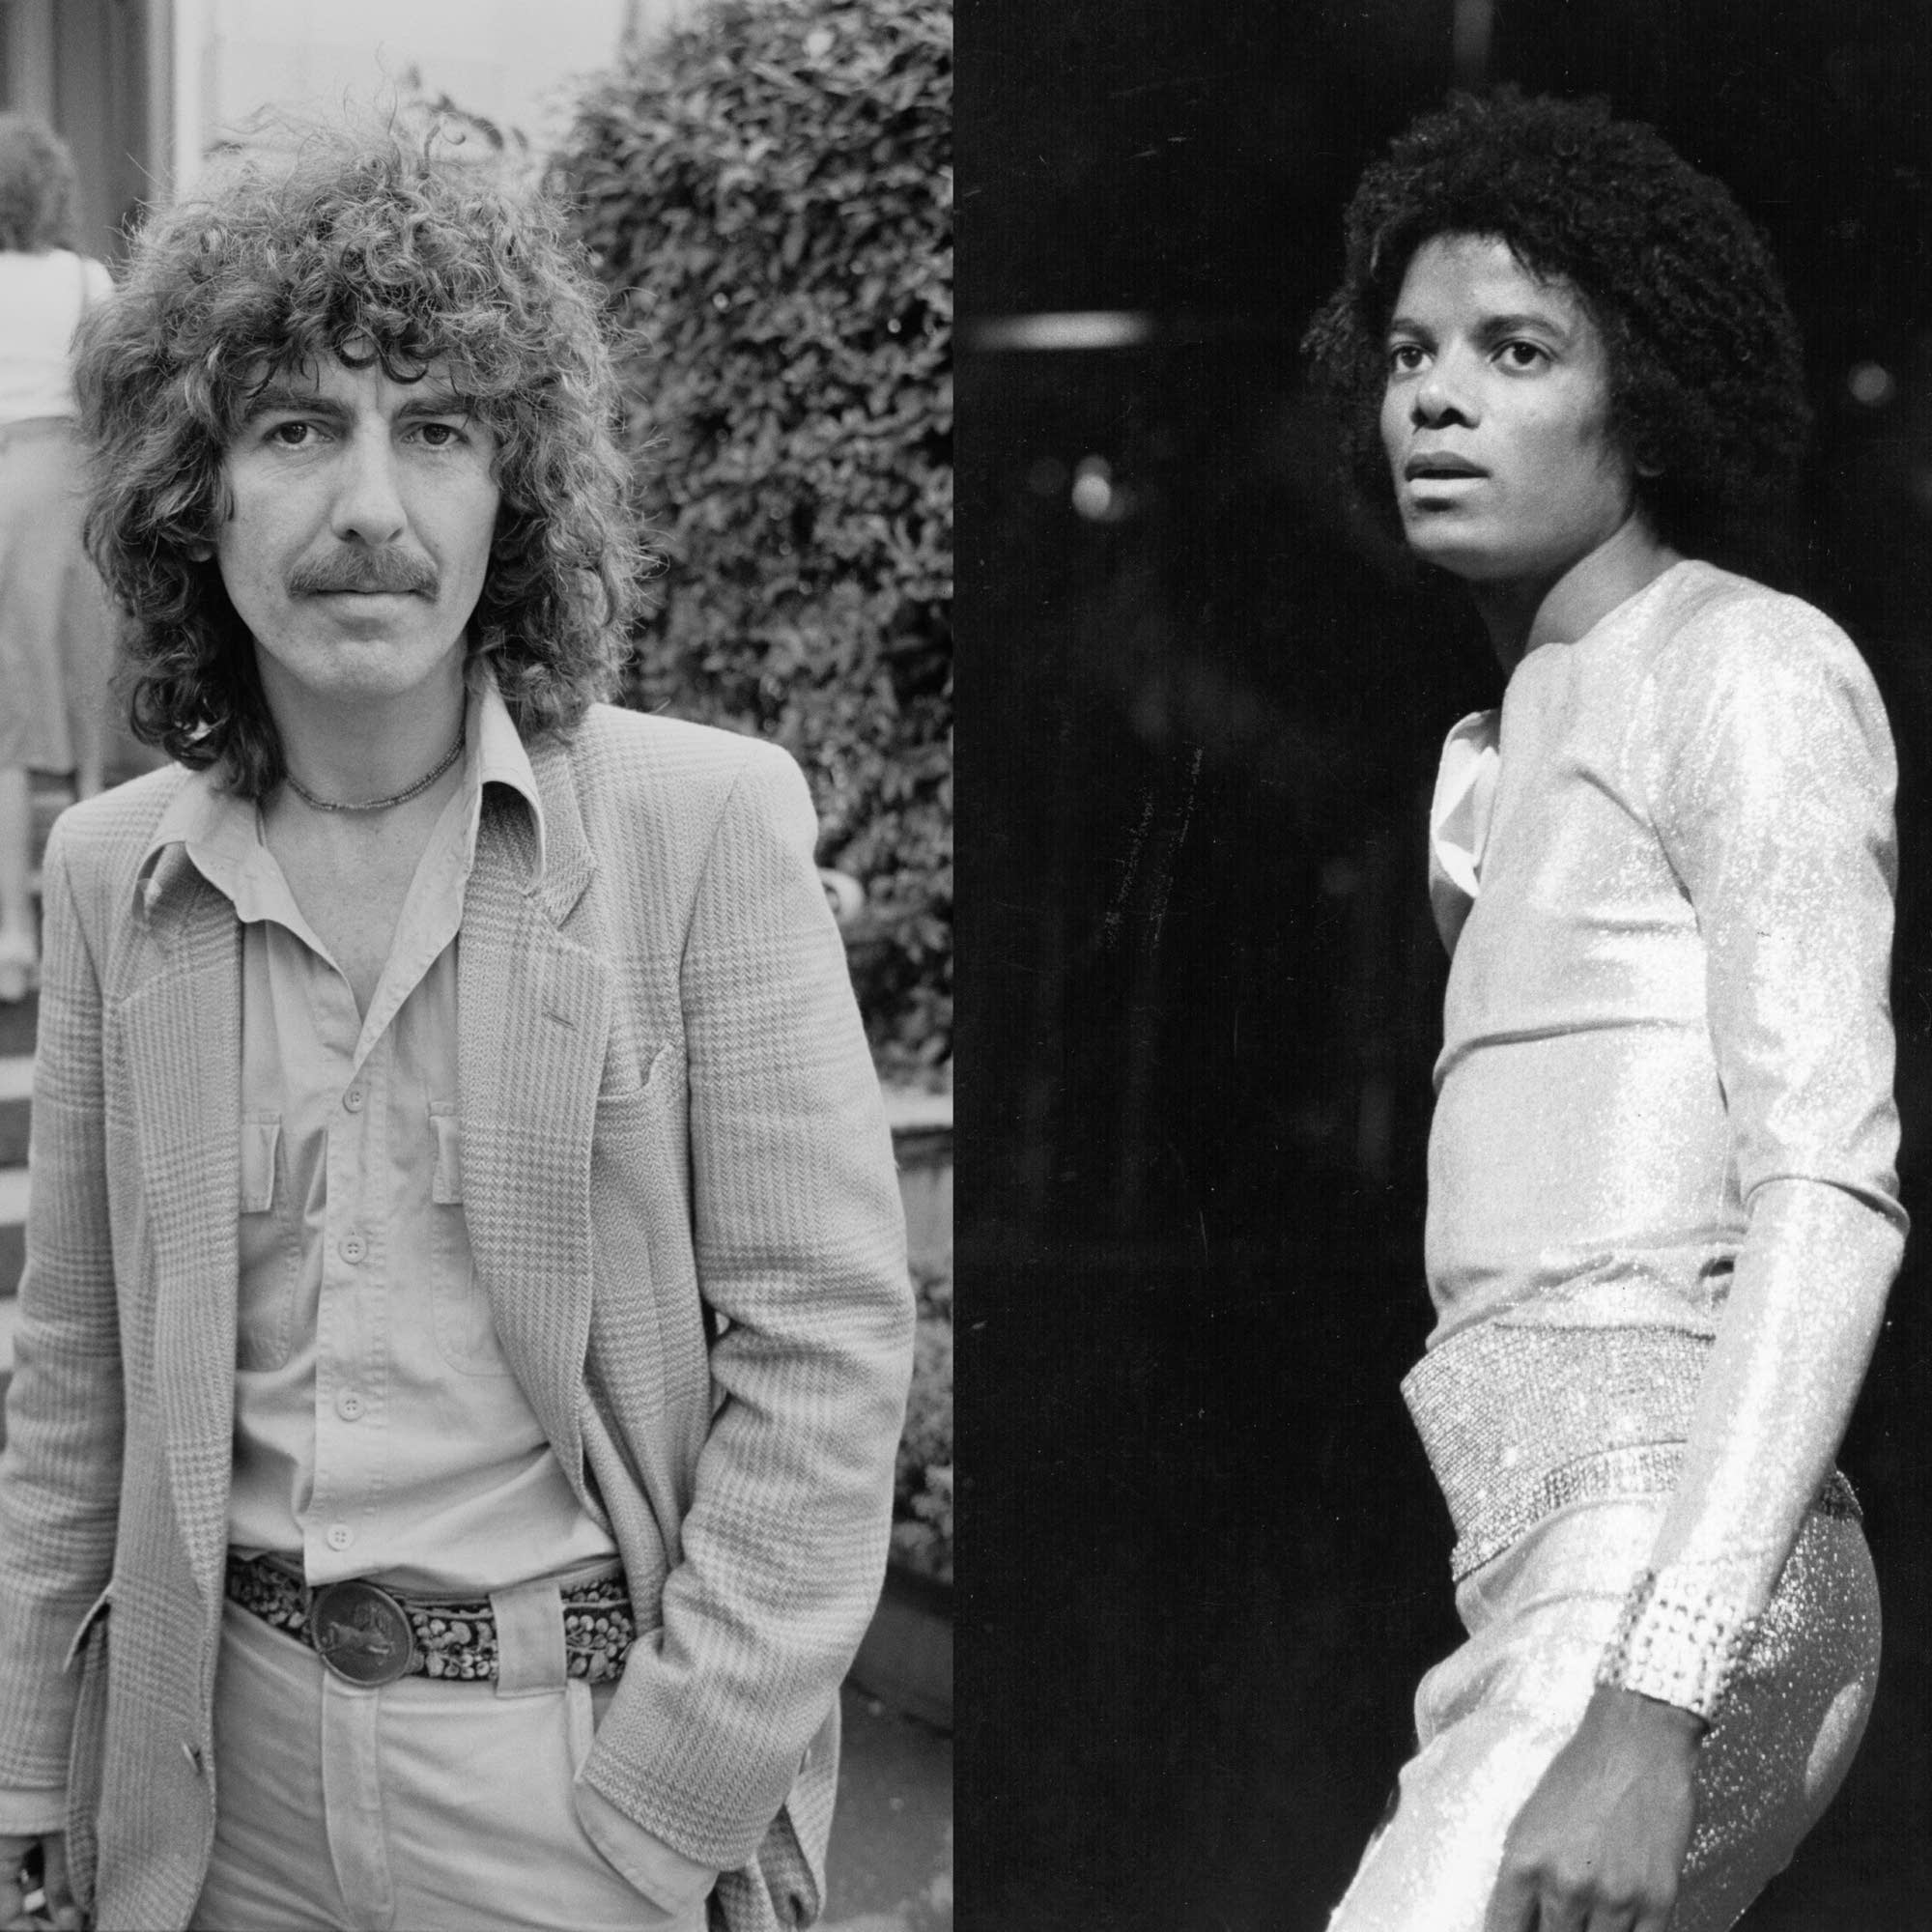 George Harrison in 1978; Michael Jackson in 1979.